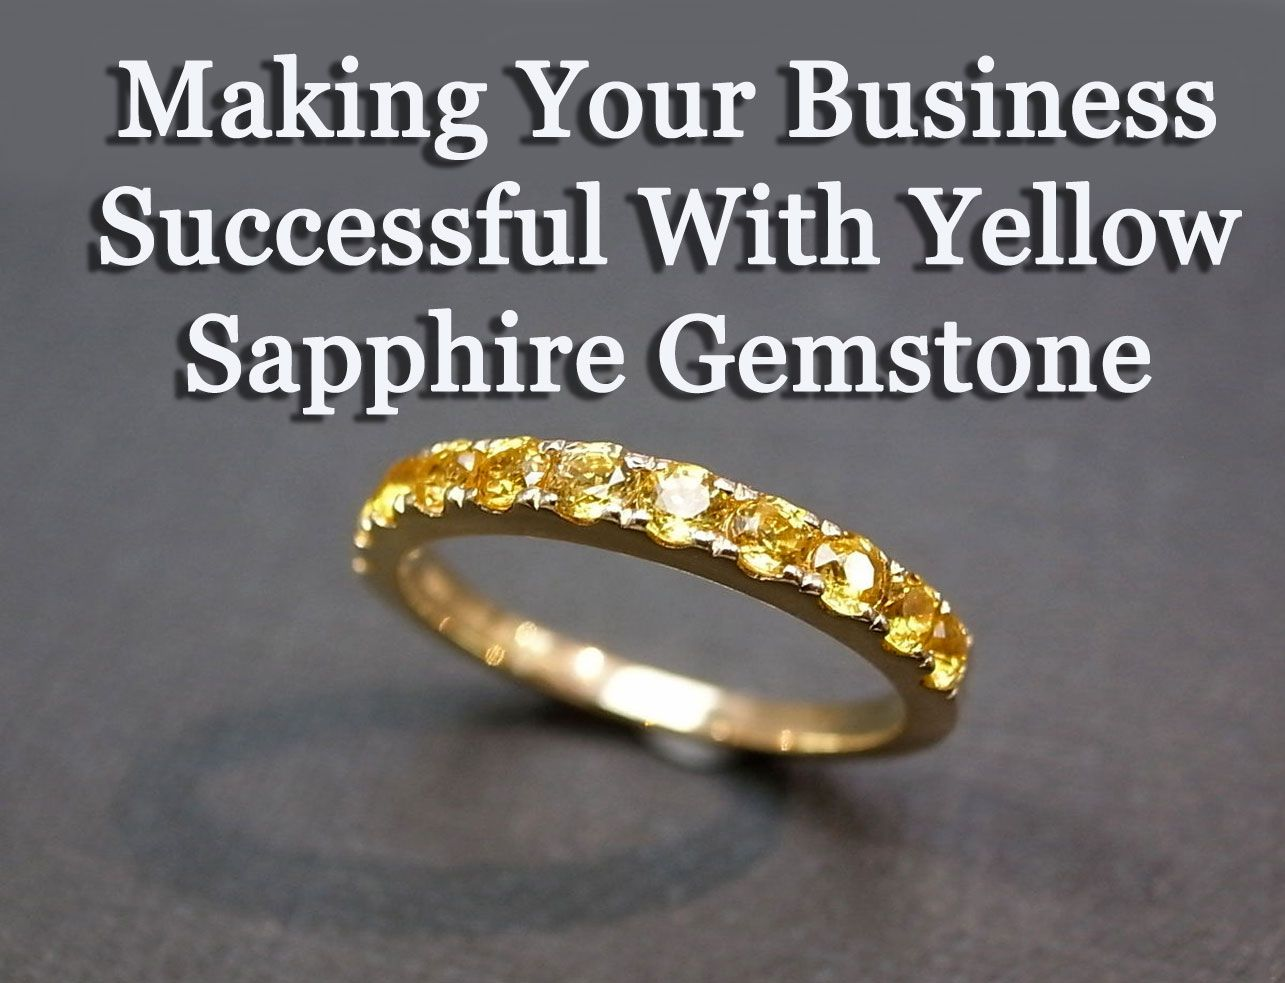 Making Your Business Successful With Yellow Sapphire Gemstone